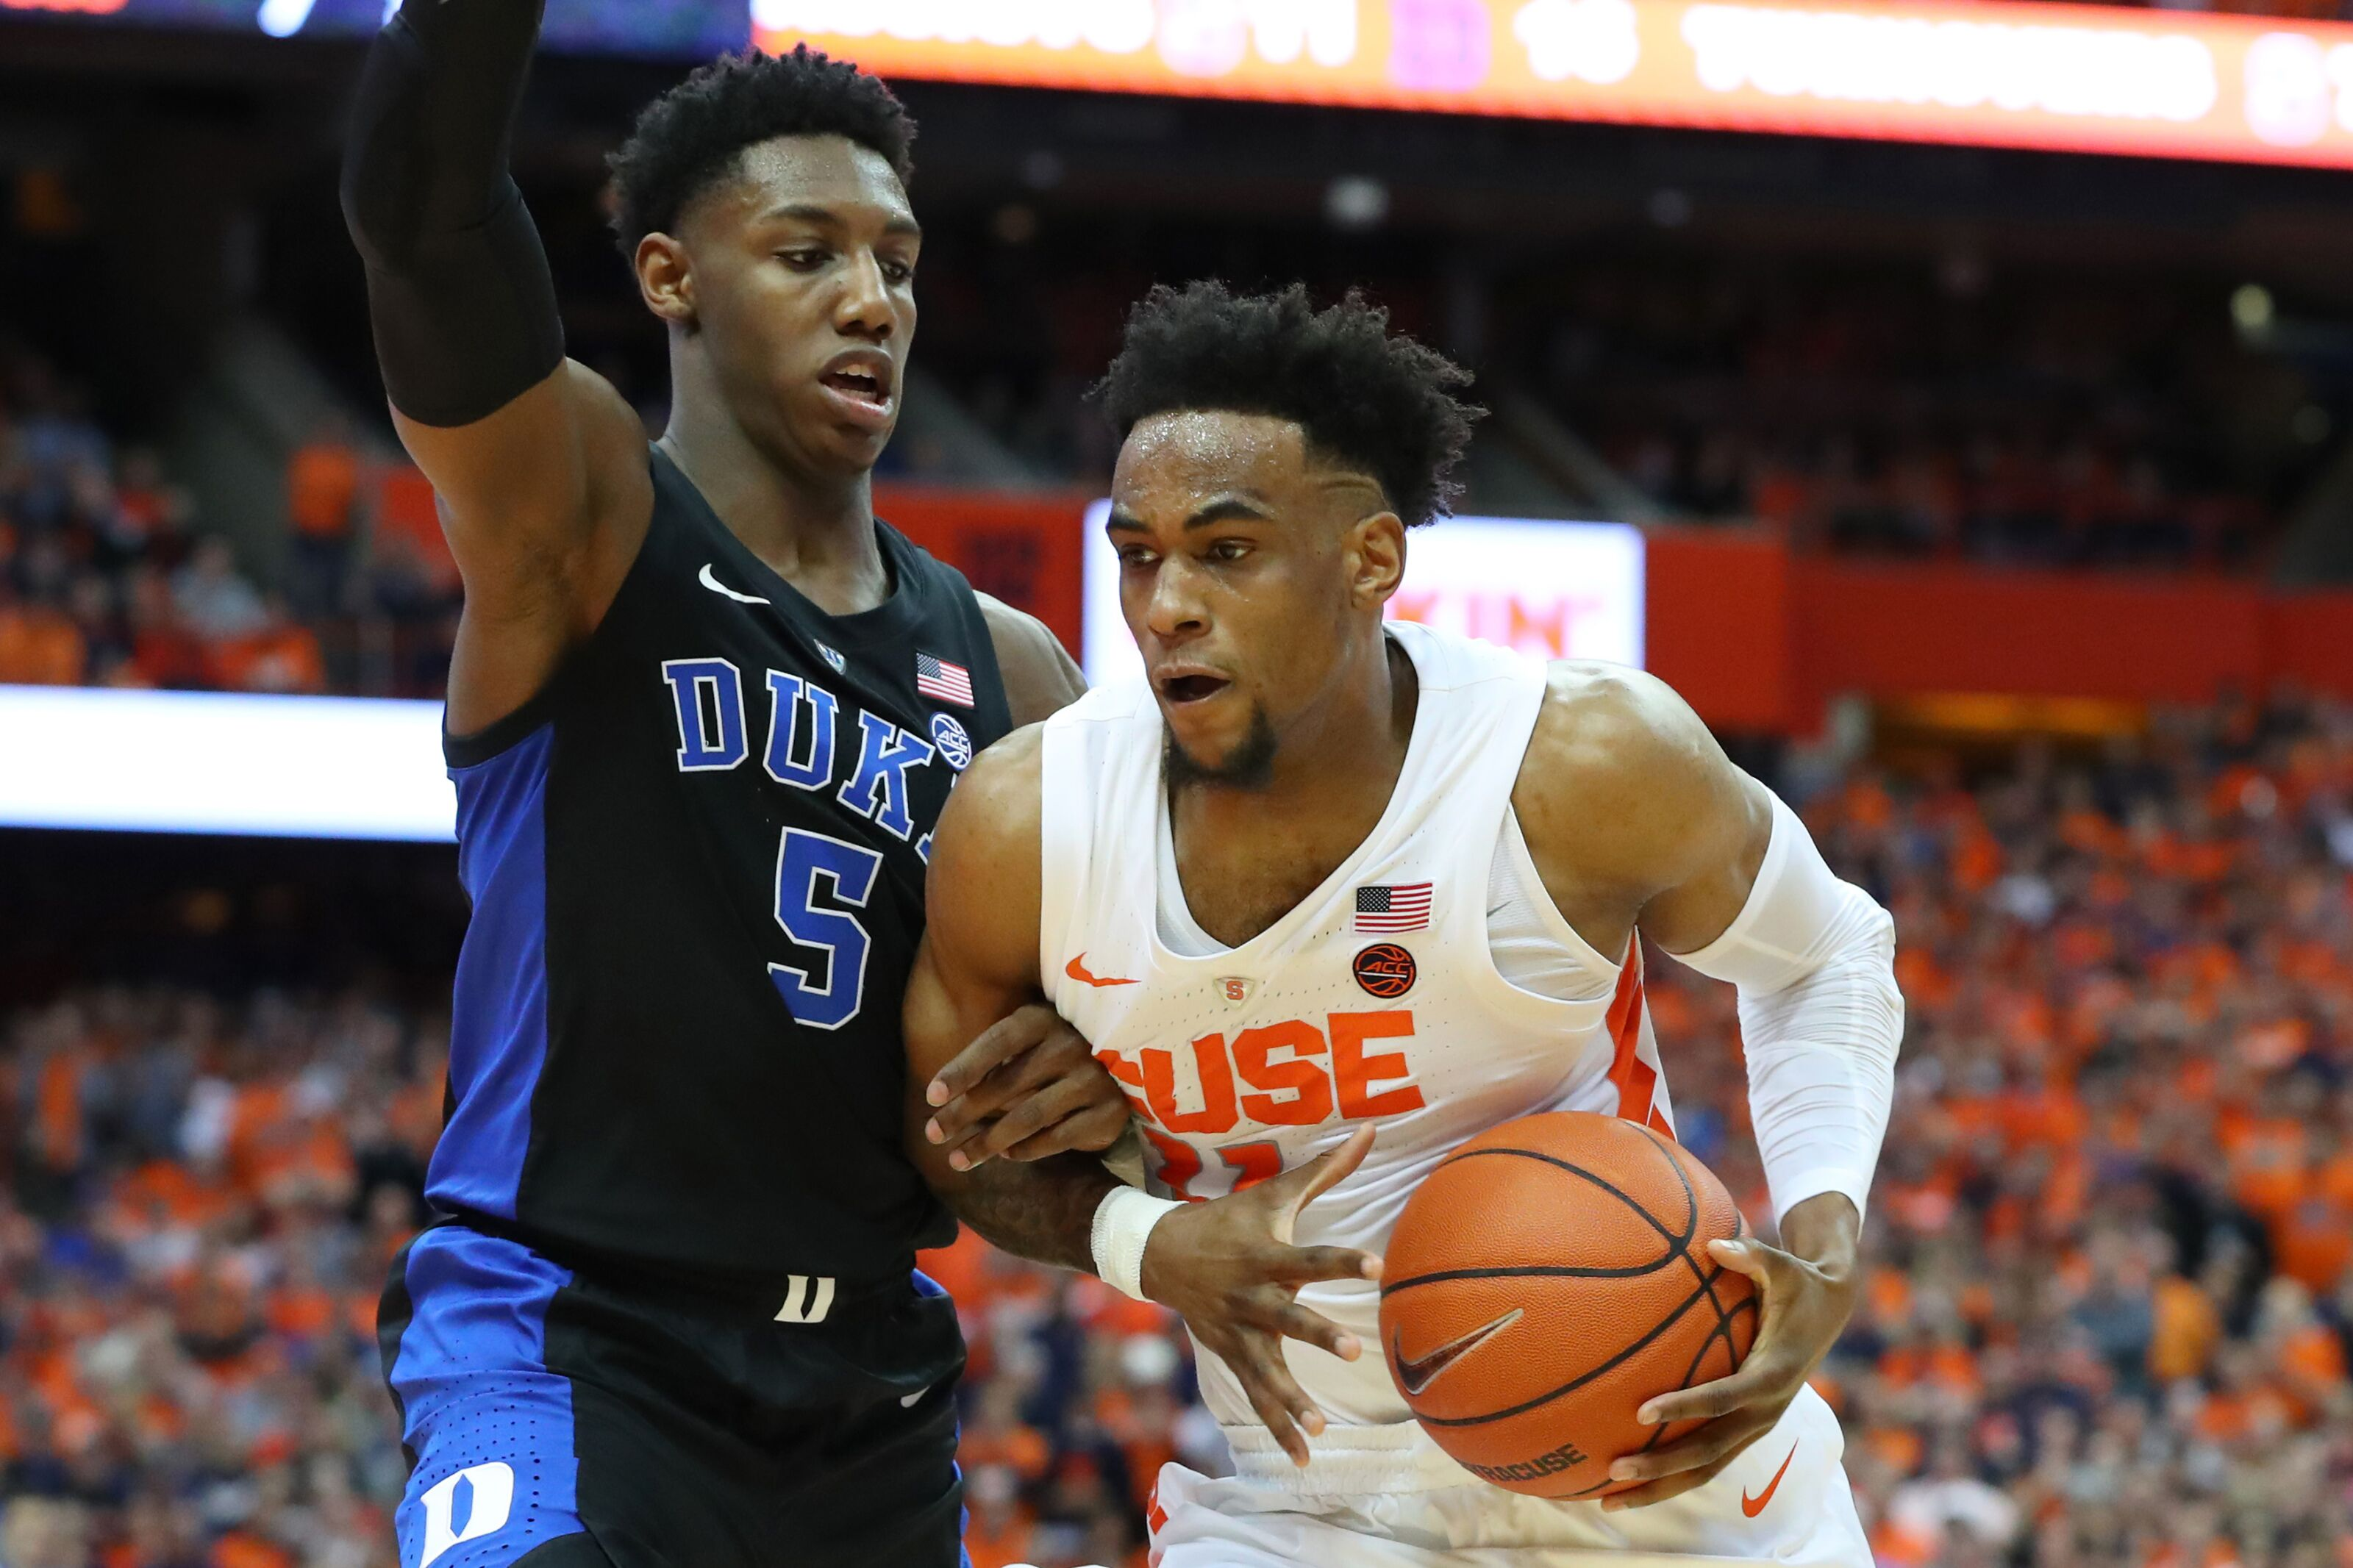 SYRACUSE, NY - FEBRUARY 23: Oshae Brissett #11 of the Syracuse Orange drives to the basket while tangled up with RJ Barrett #5 of the Duke Blue Devils during the second half at the Carrier Dome on February 23, 2019 in Syracuse, New York. Duke defeated Syracuse 75-65. (Photo by Rich Barnes/Getty Images)